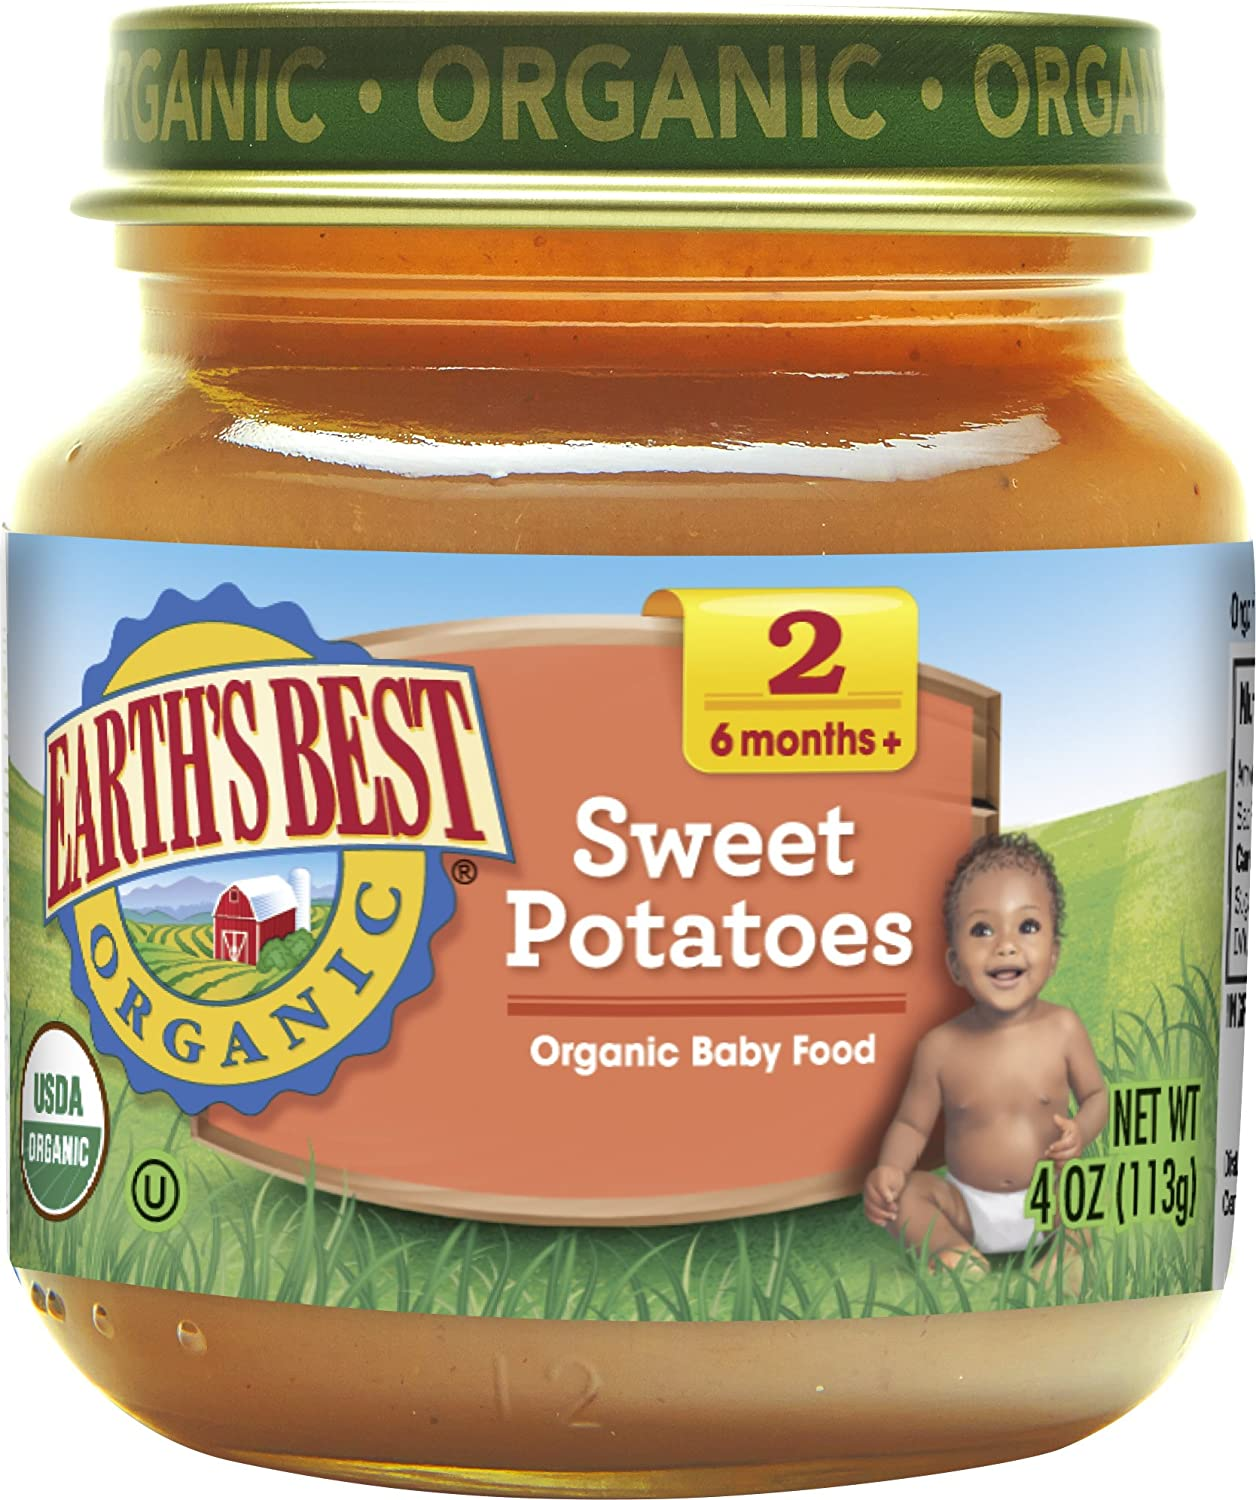 Earth's Best Organic Stage 2 Baby Food, Dinner Favorites Variety Pack, 4 oz. Jar (12 Count) Hain Group (Earth' s Best)